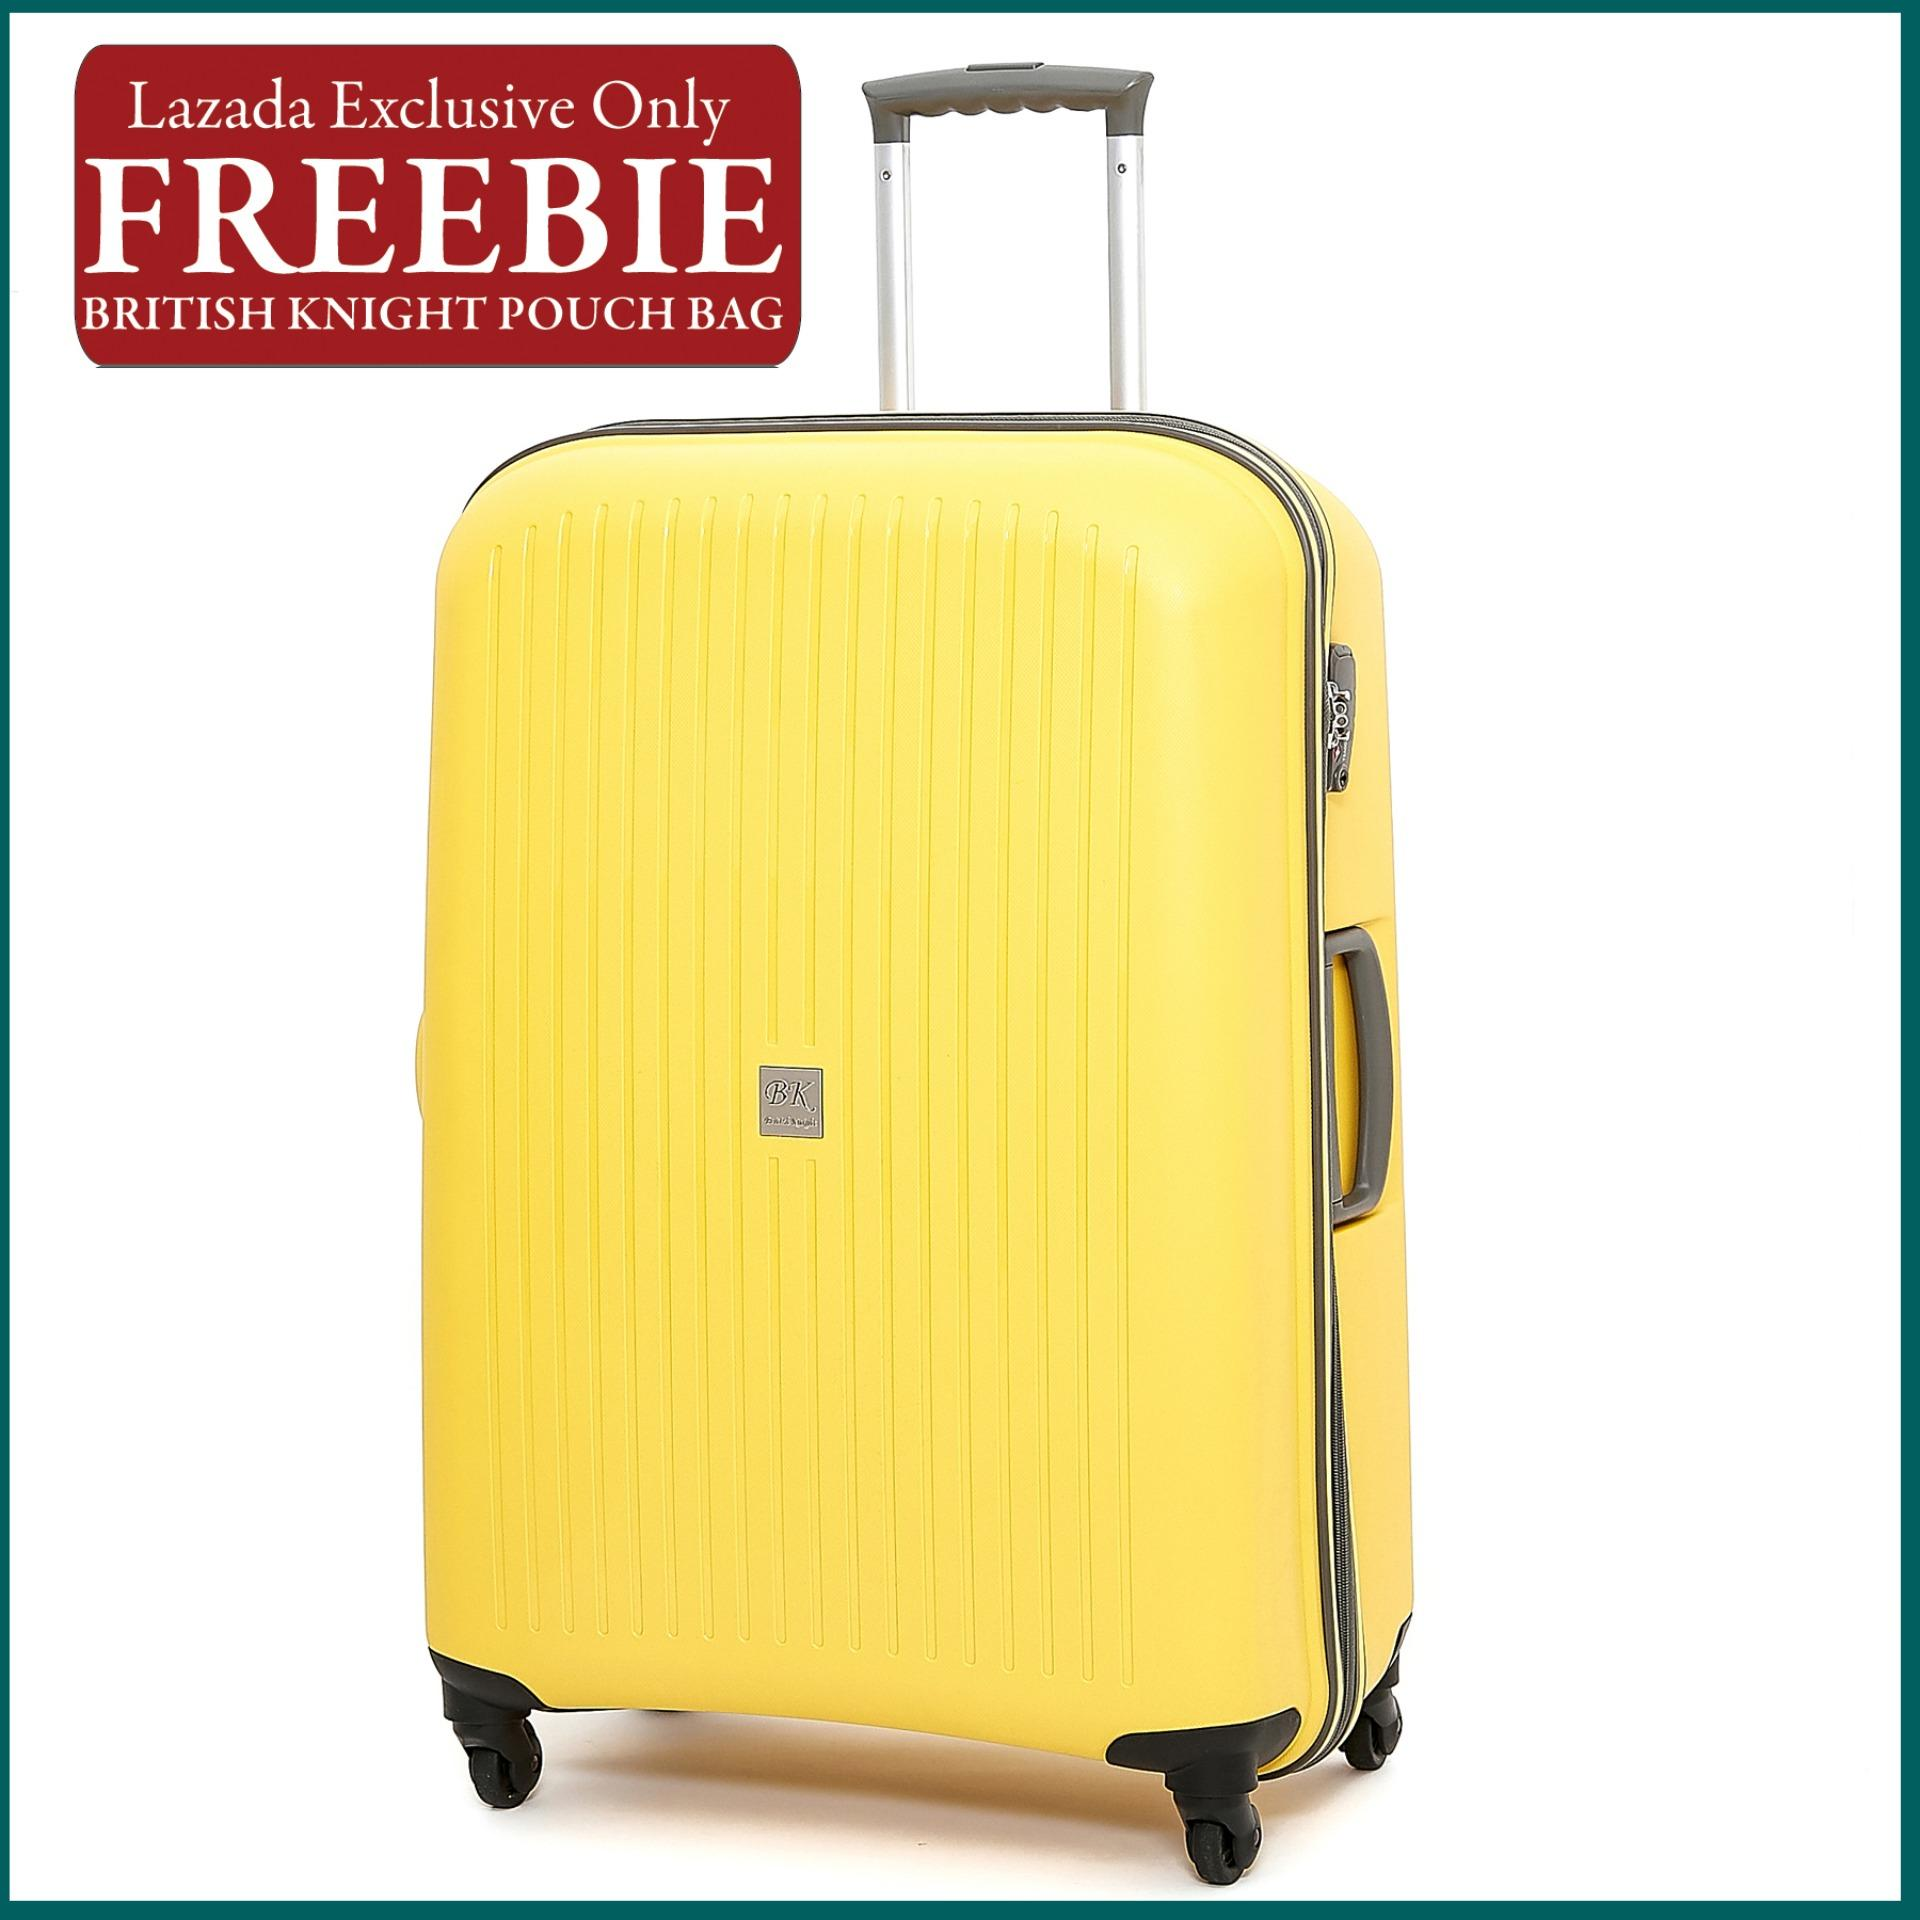 0b918345001 British Knight BIP950 Yellow Large (28 Inch) Luggage with TSA Lock (FREE  British